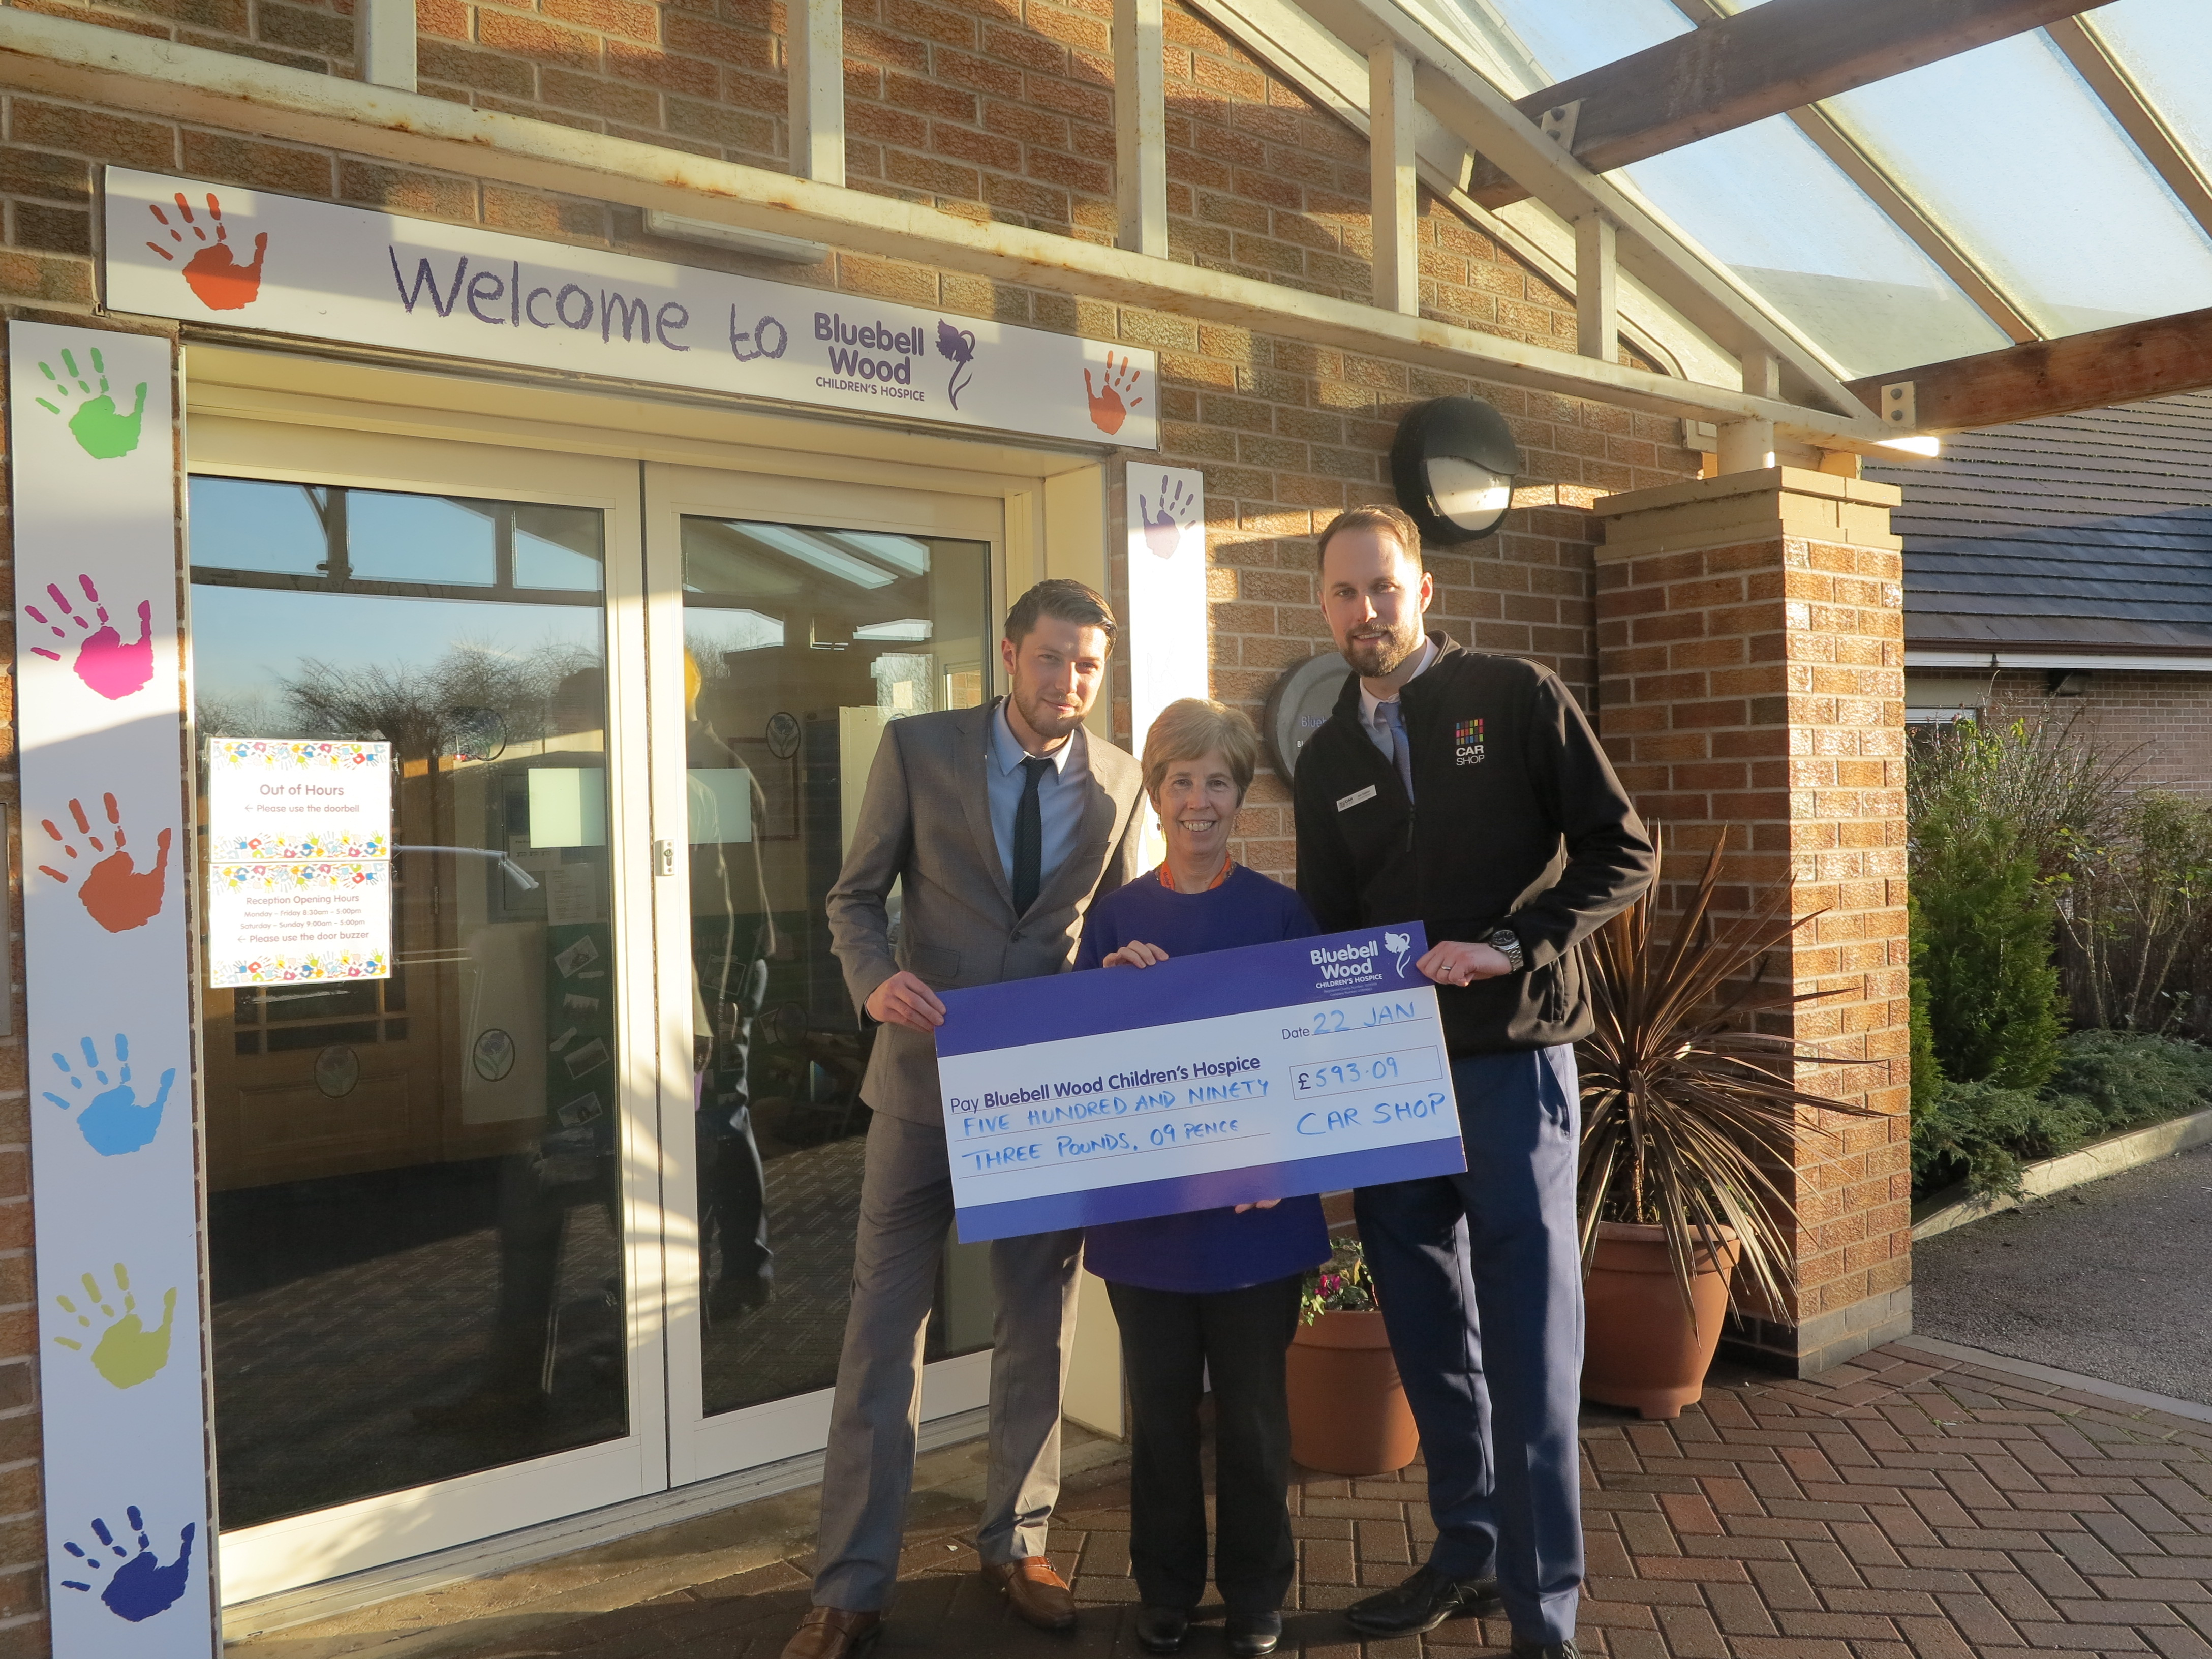 CarShop Doncaster Raise Funds for Local Childrens Hospice, Bluebell Wood